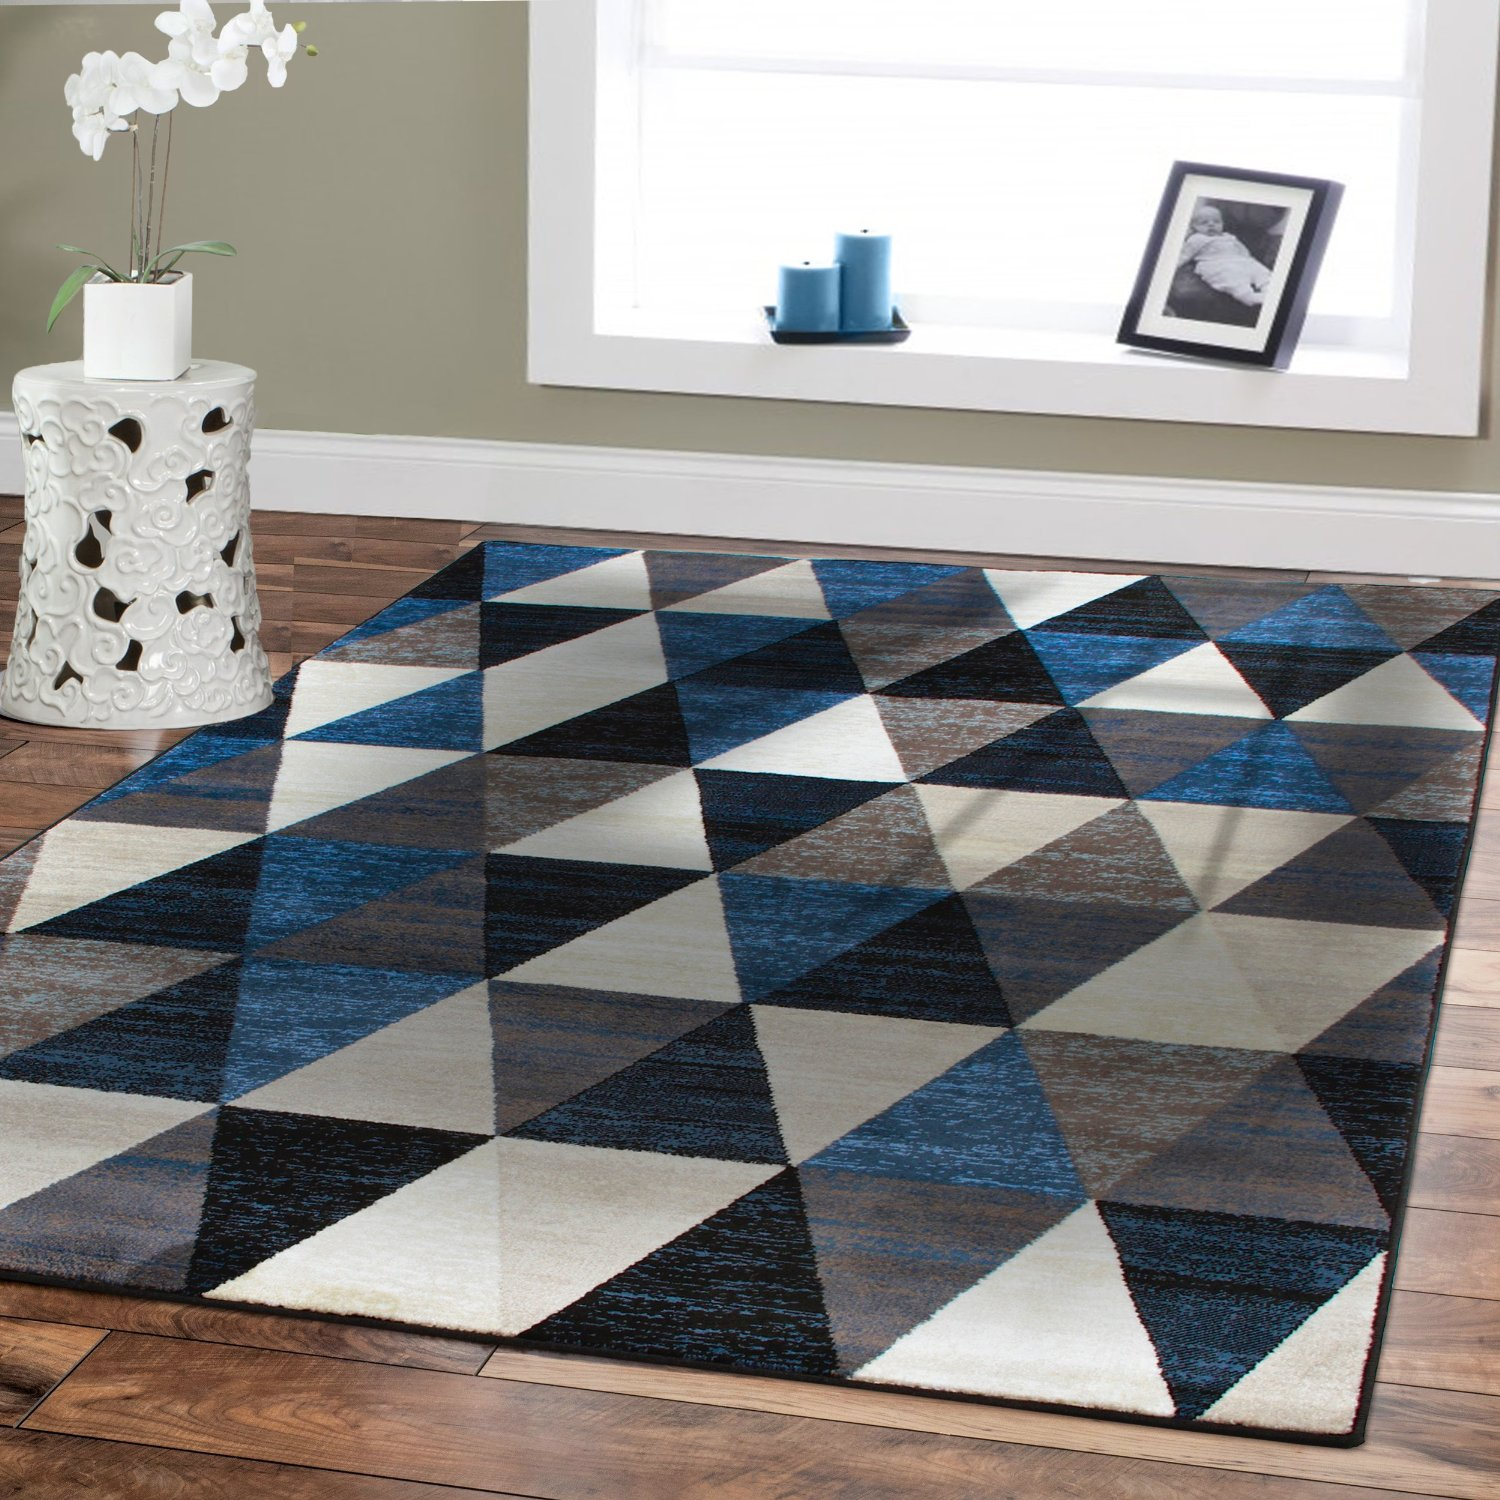 Fabulous Cheap Brown And Blue Rugs Find Brown And Blue Rugs Deals On Download Free Architecture Designs Intelgarnamadebymaigaardcom